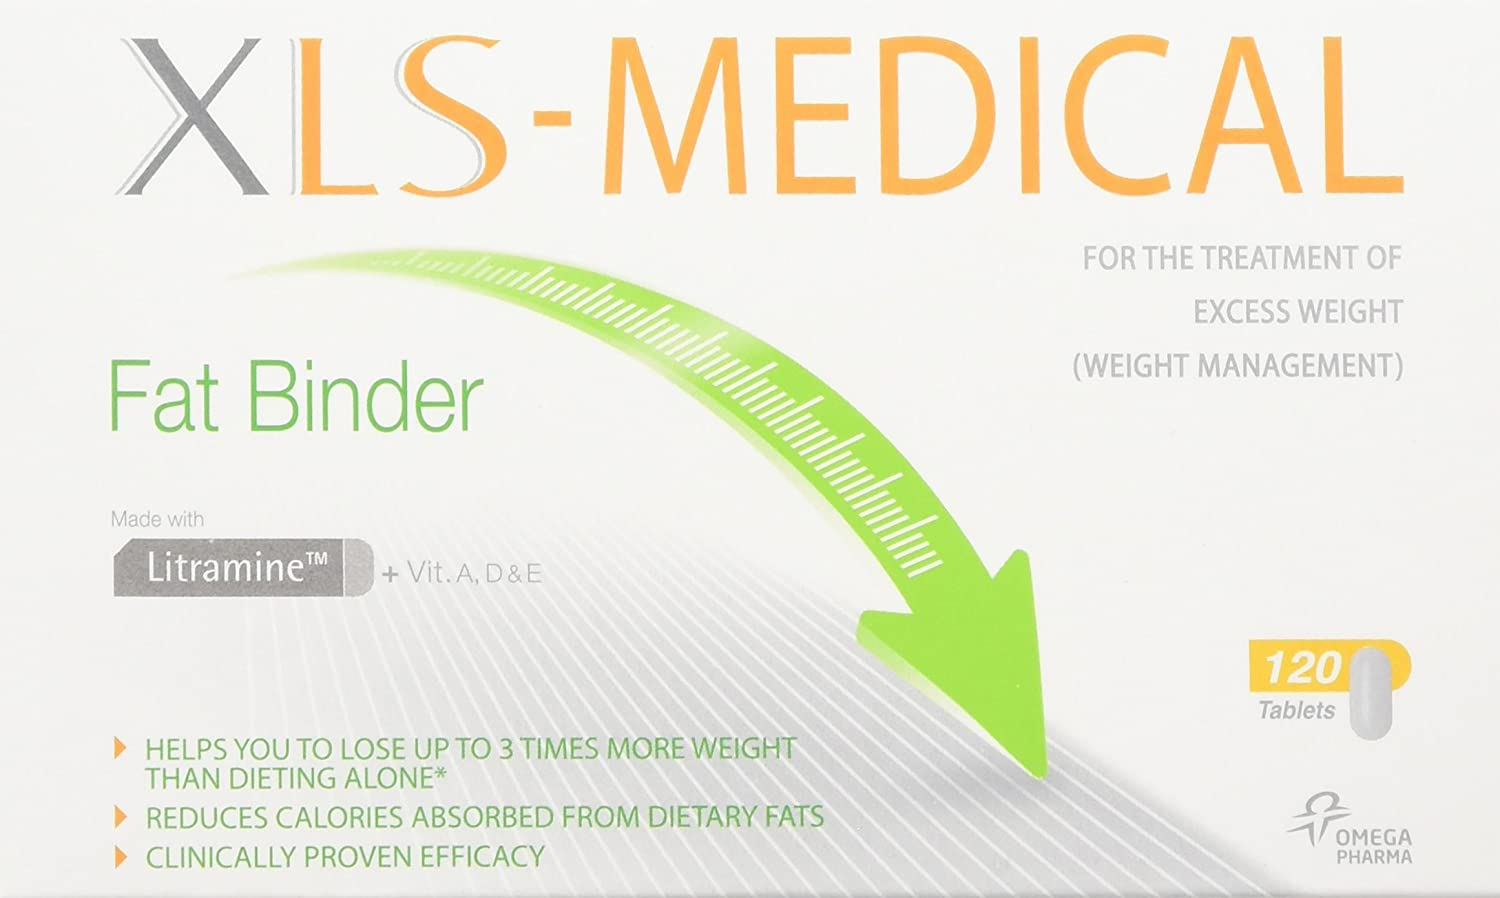 XLS Medical Fat Binder Tablets Weight Loss Aid - 20 Day Trial Pack, 120  Tablets